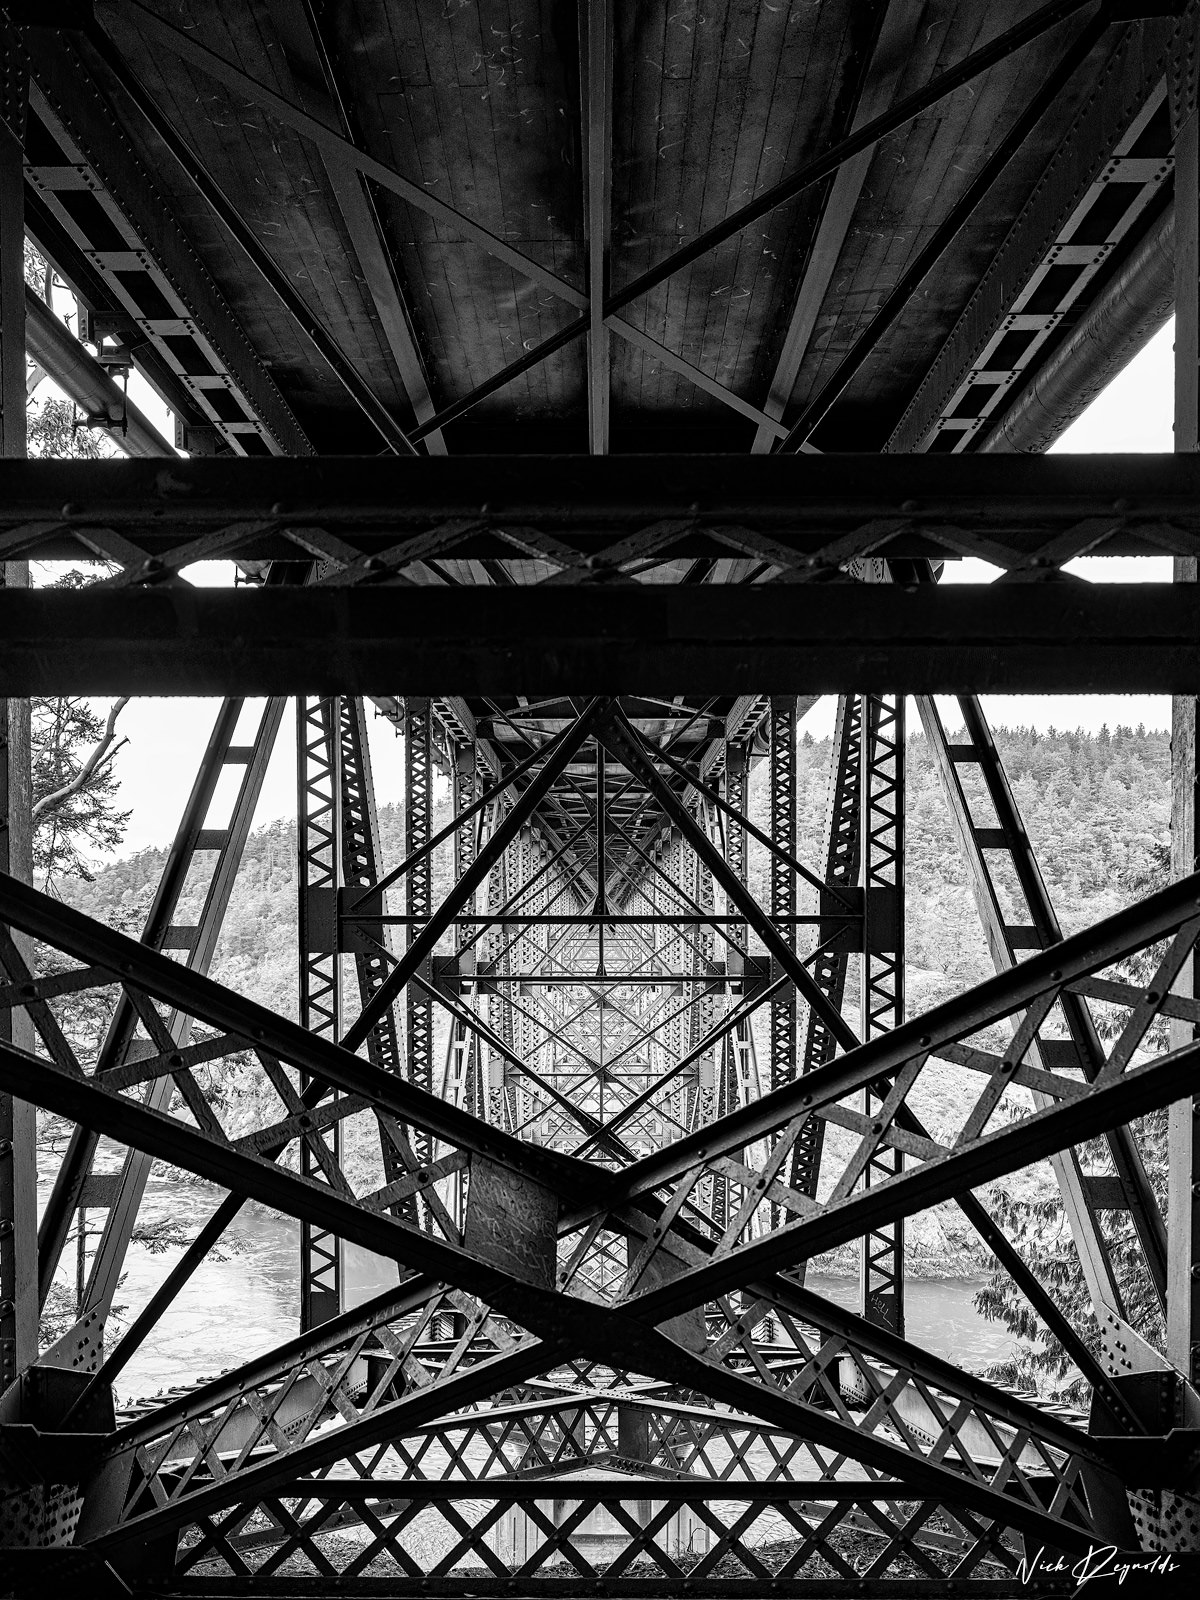 A Fine Art Limited Edition -  This black and whitephotographwas taken on the trail under the Deception Pass Bridge...